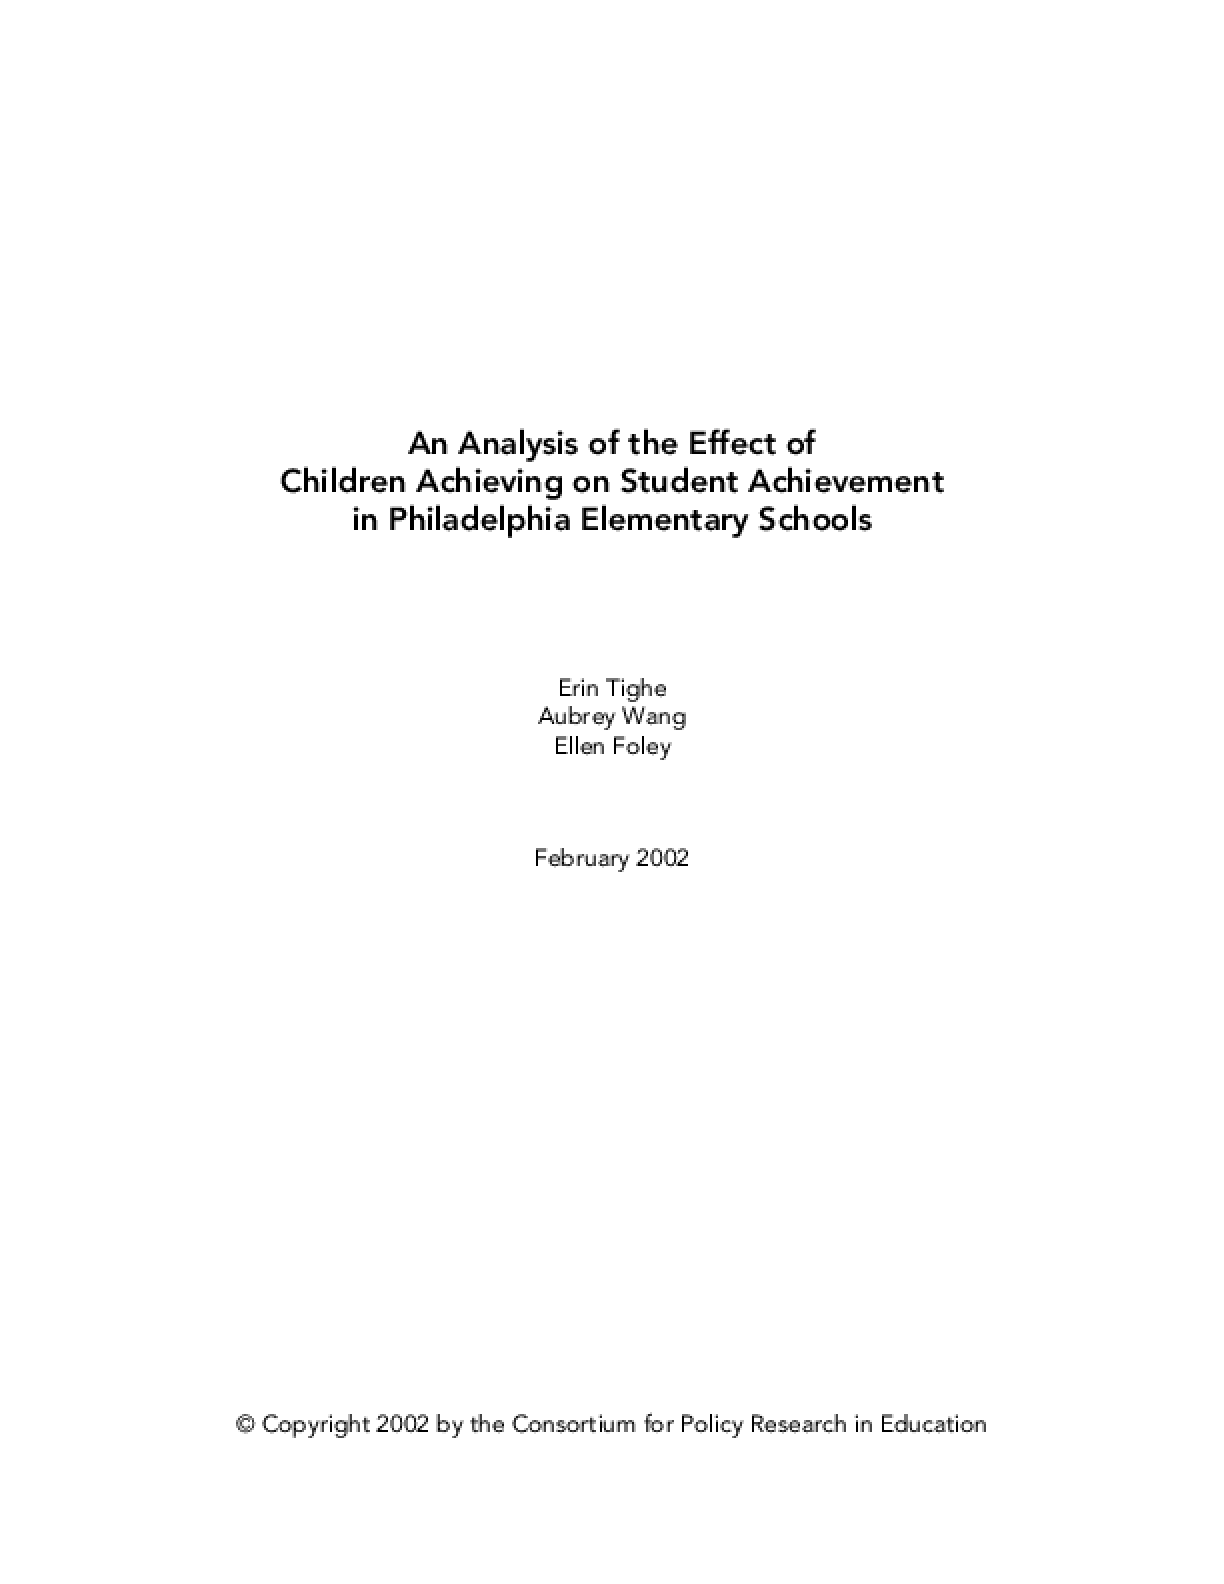 An Analysis of the Effects of Children Achieving on Student Achievement in Philadelphia Elementary Schools